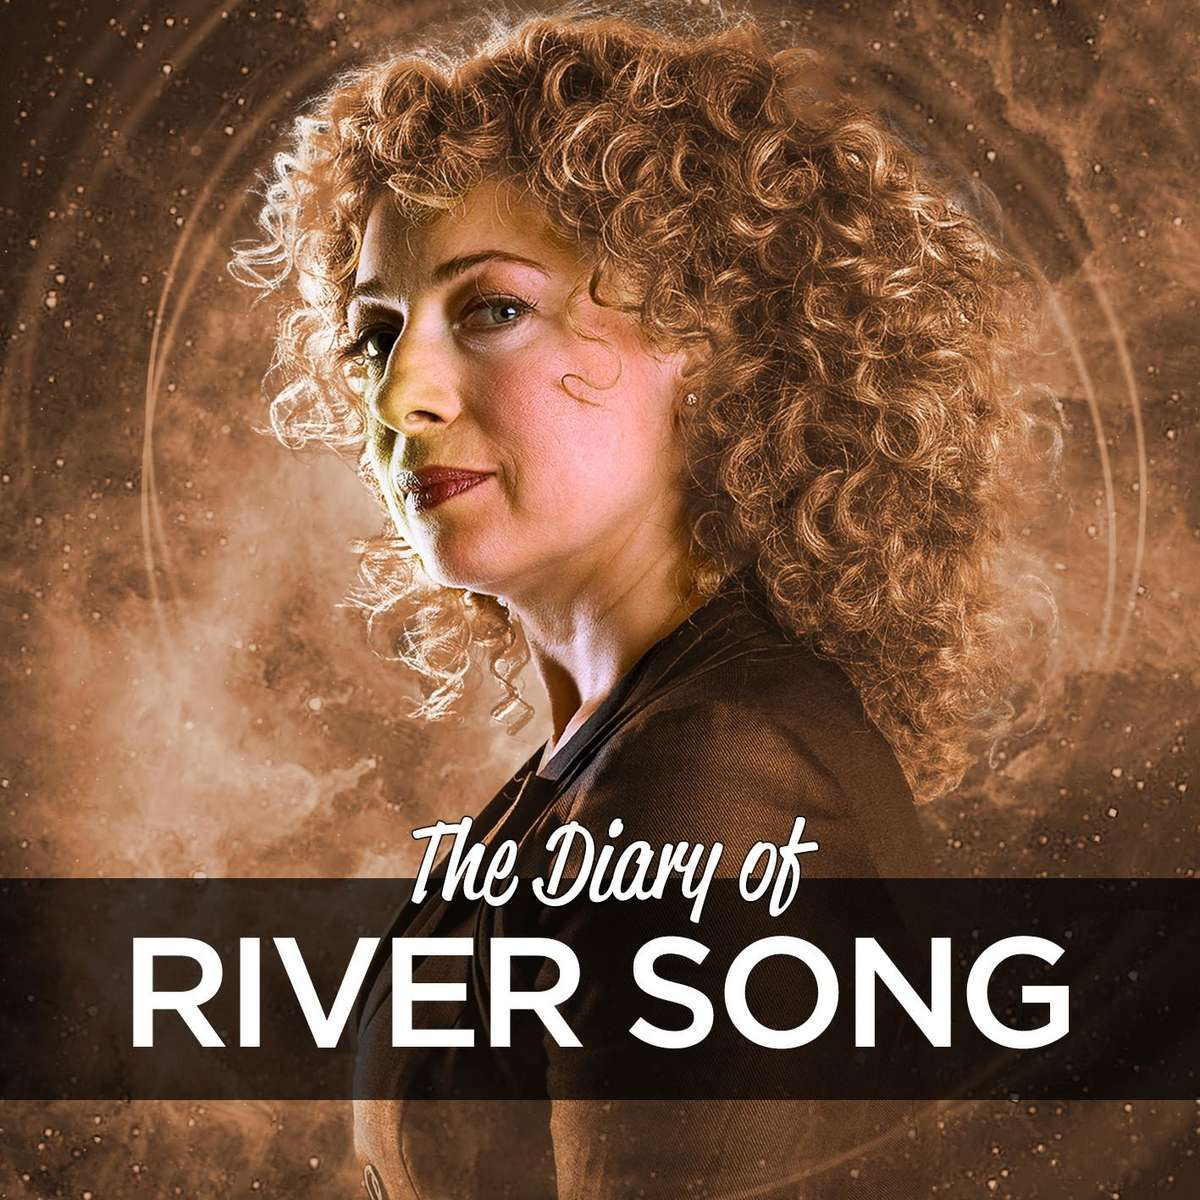 the-diary-of-river-song.jpg